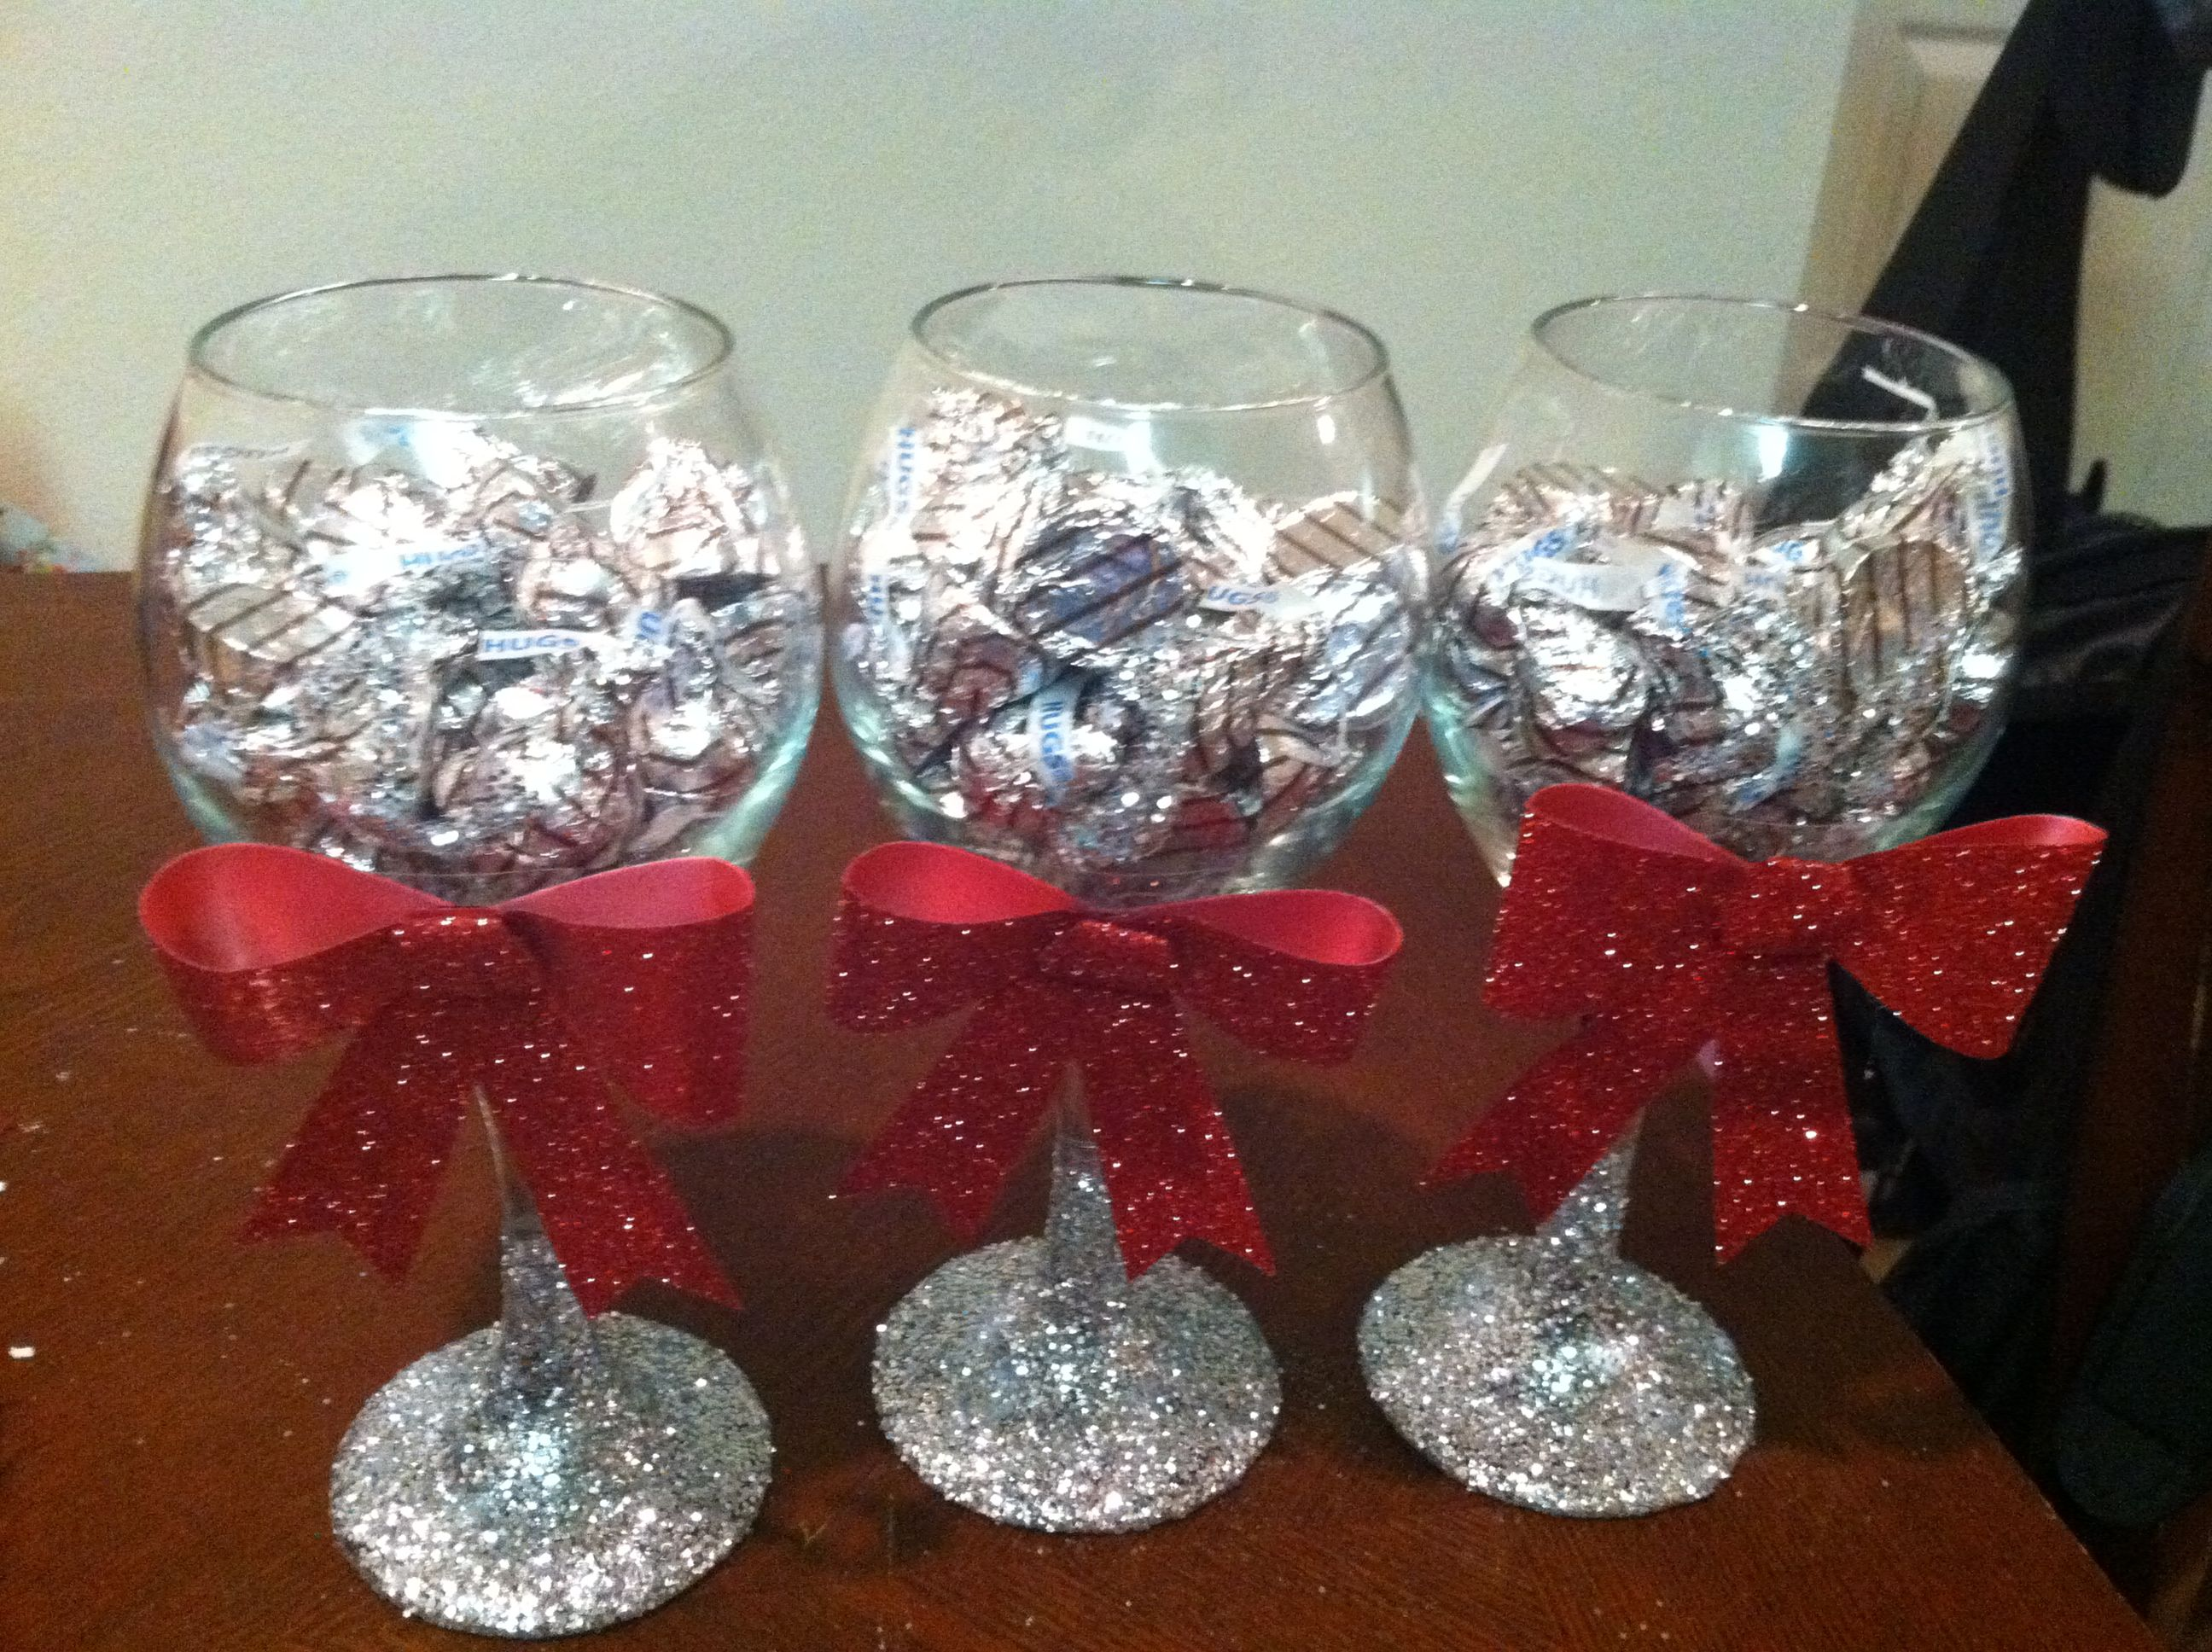 Diy glitter wine glasses ideas pinterest wine glass How to make wine glasses sparkle